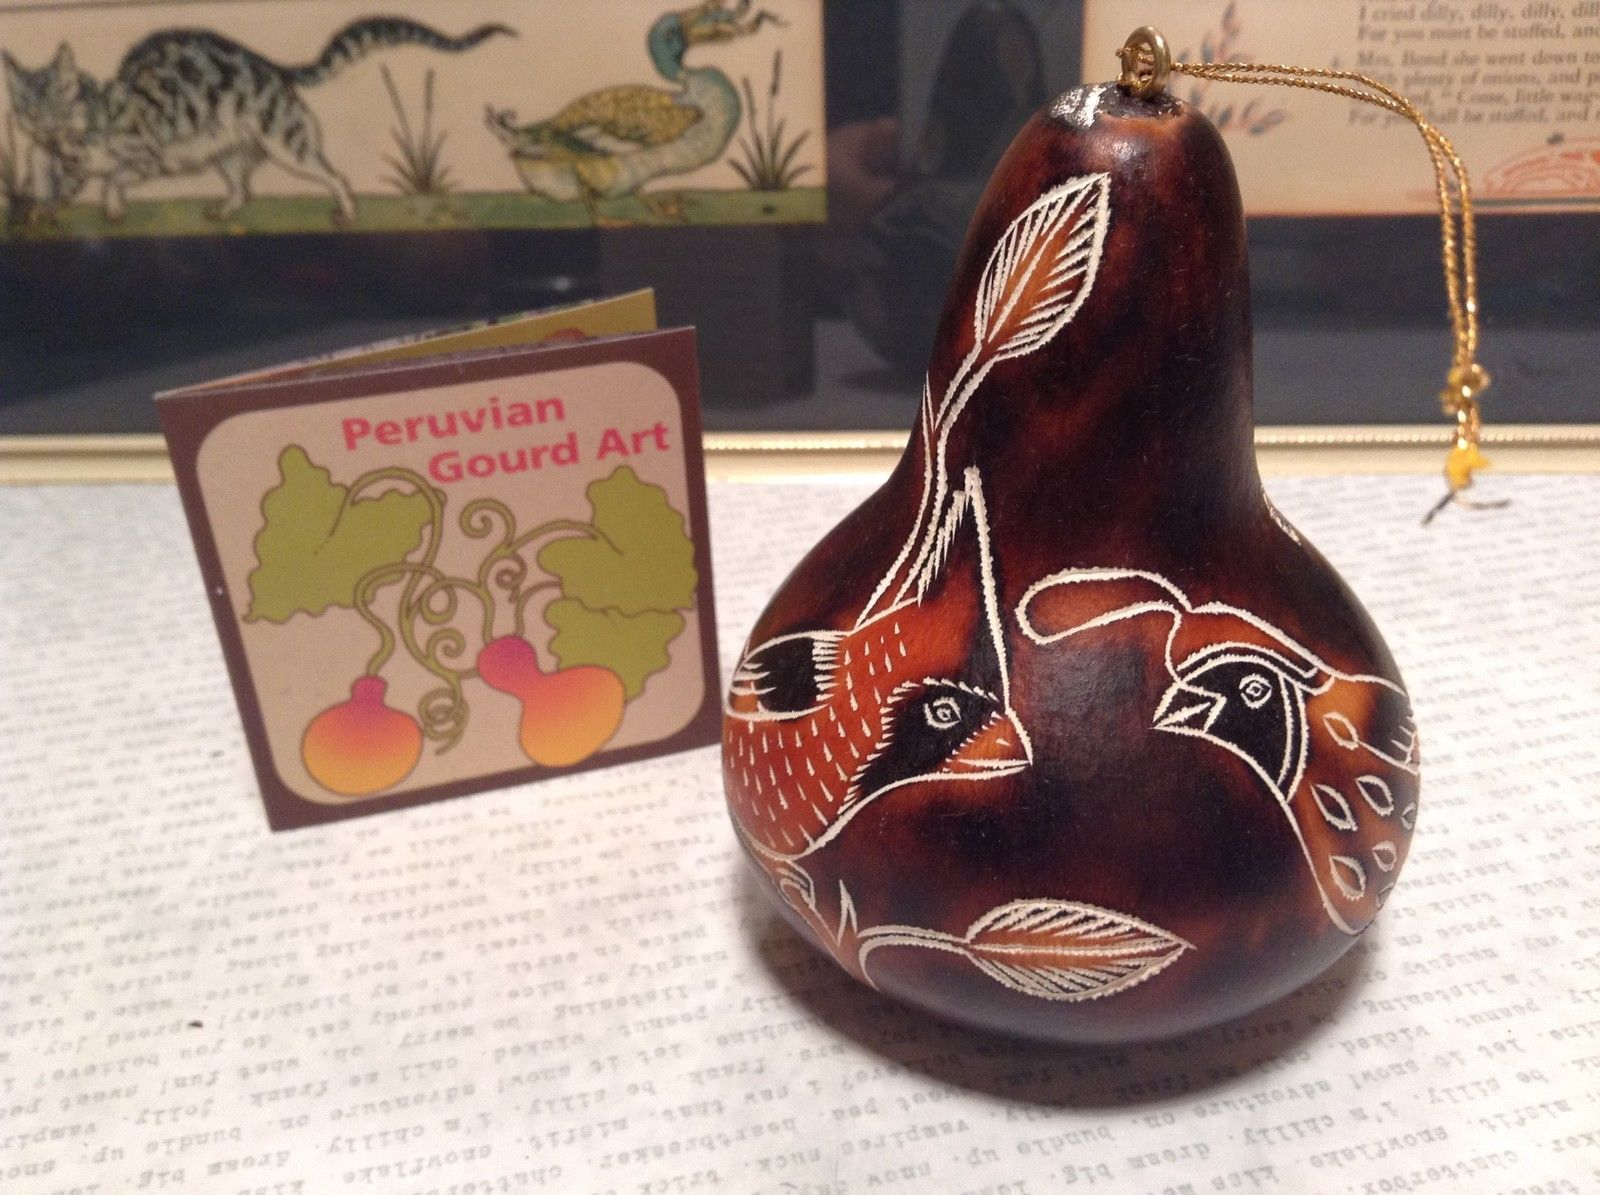 Hand Carved Art Ornament Peruvian Gourd Dark with Colorful Birds Fair Trade